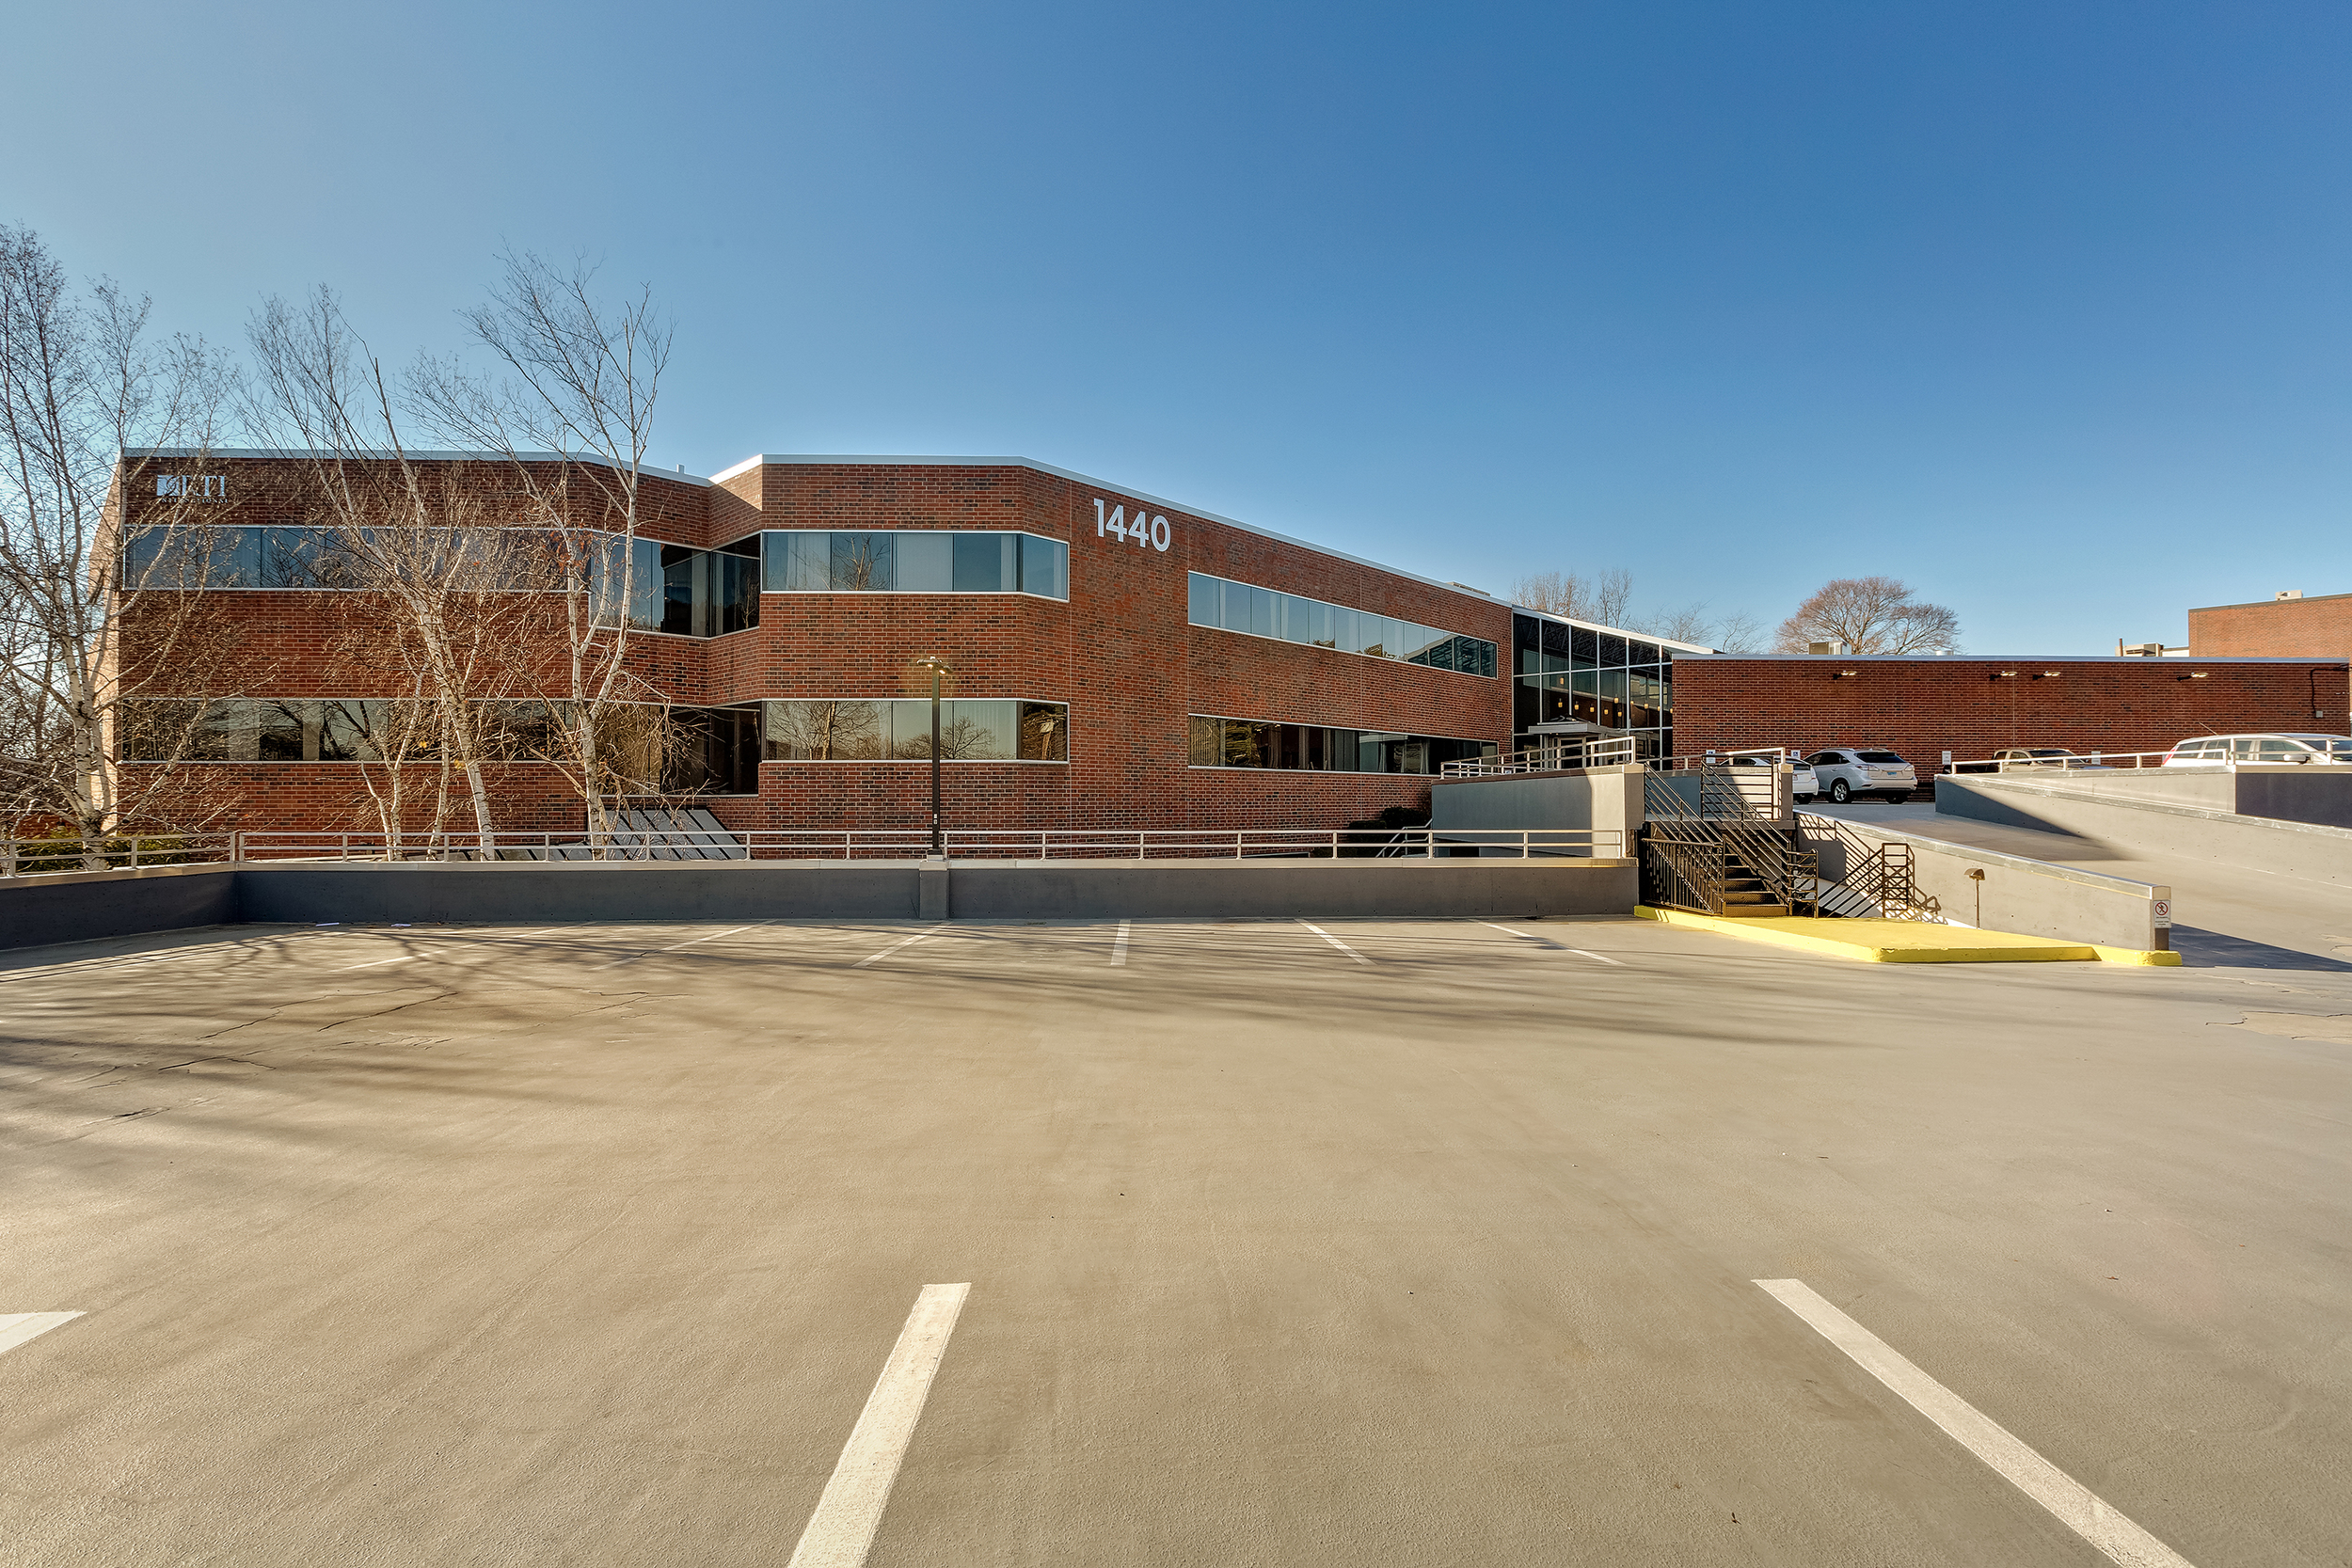 New image with updated windows, frames, roof and edge metal, parking garage façade and signage